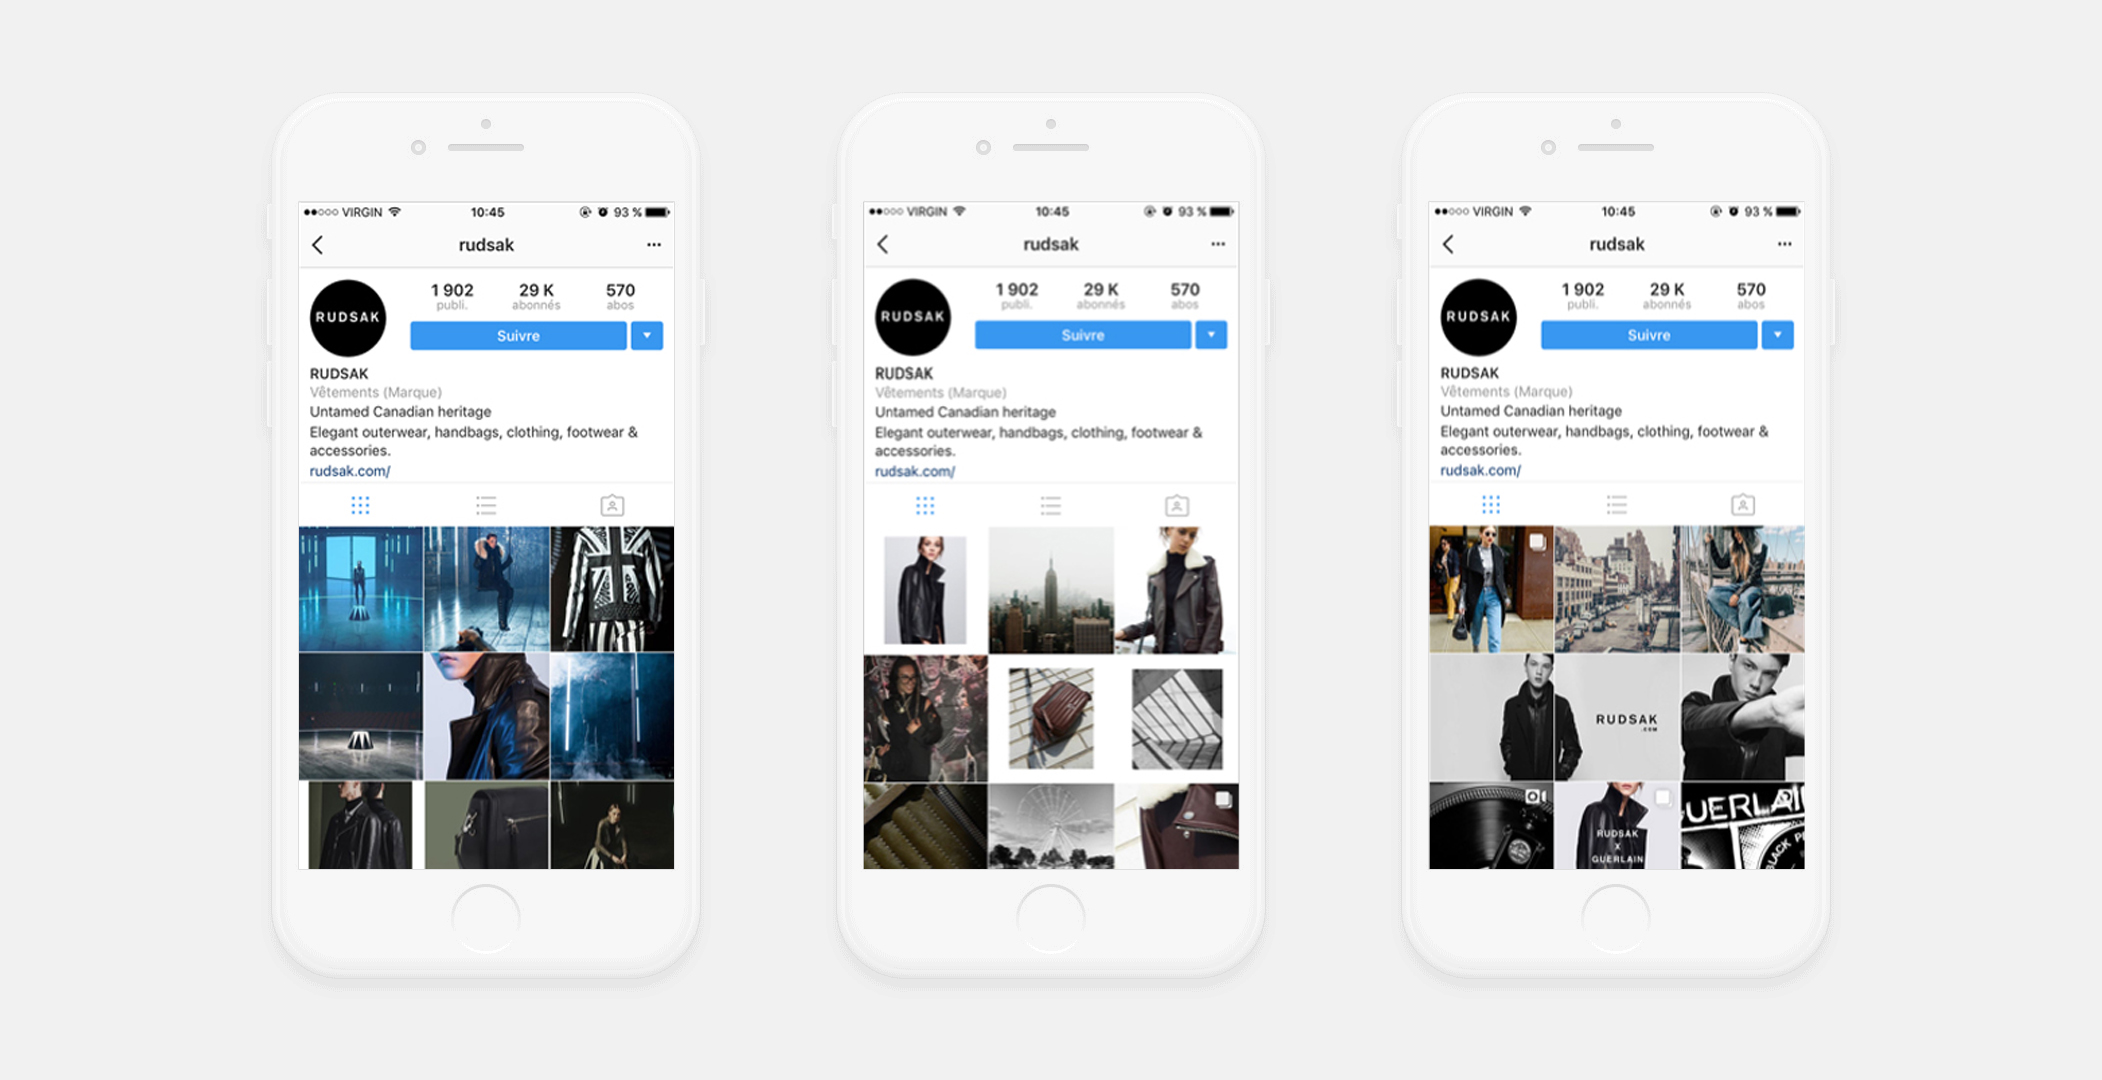 Evolution of the Instagram Strategy following the new branding.